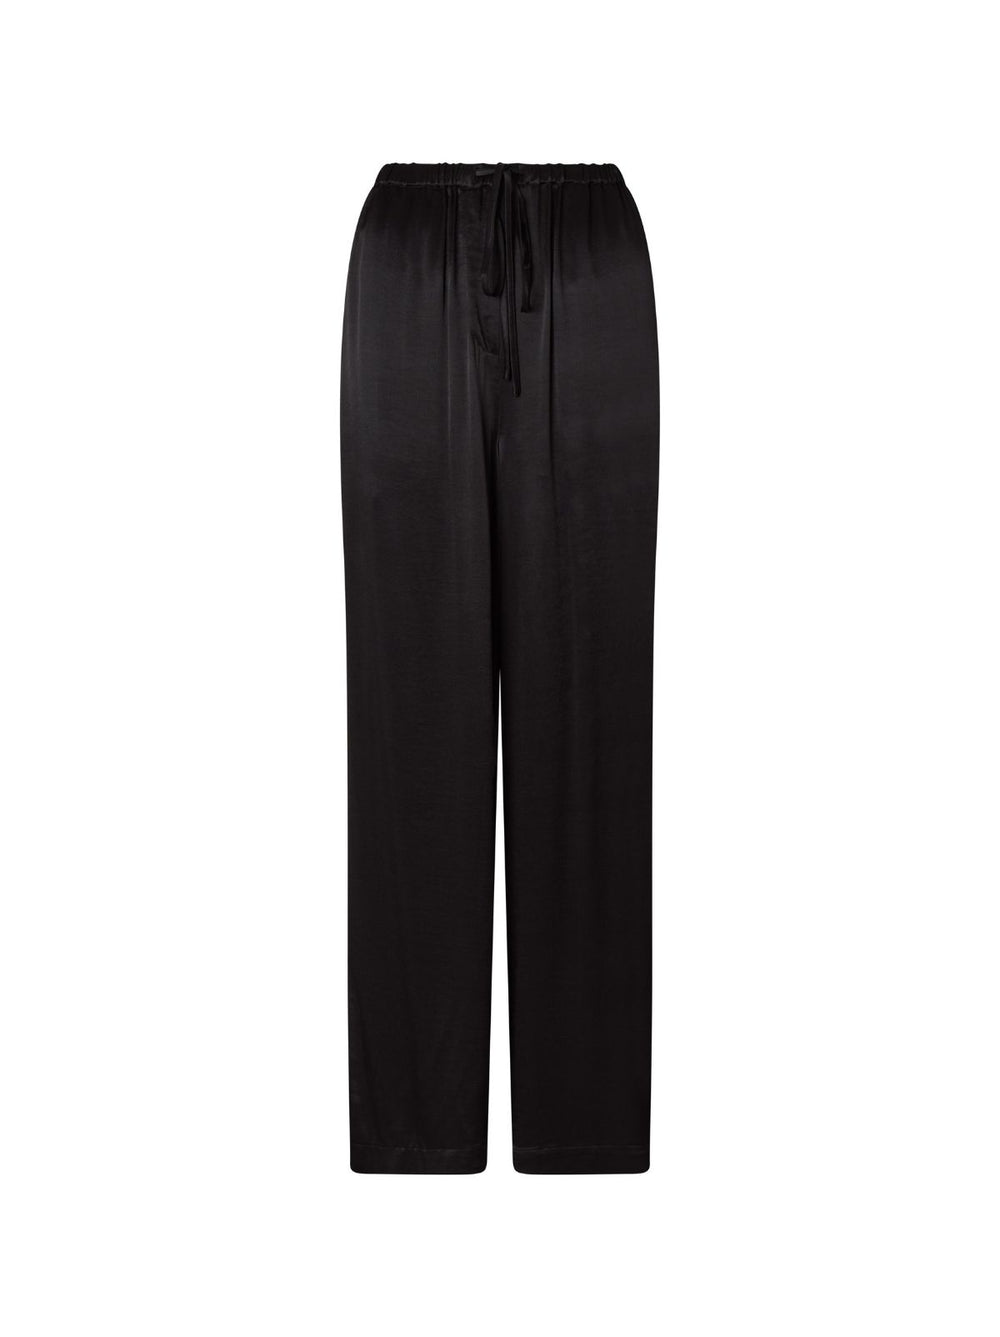 Kent Luxe Satin Drawstring Trousers by KITRI Studio